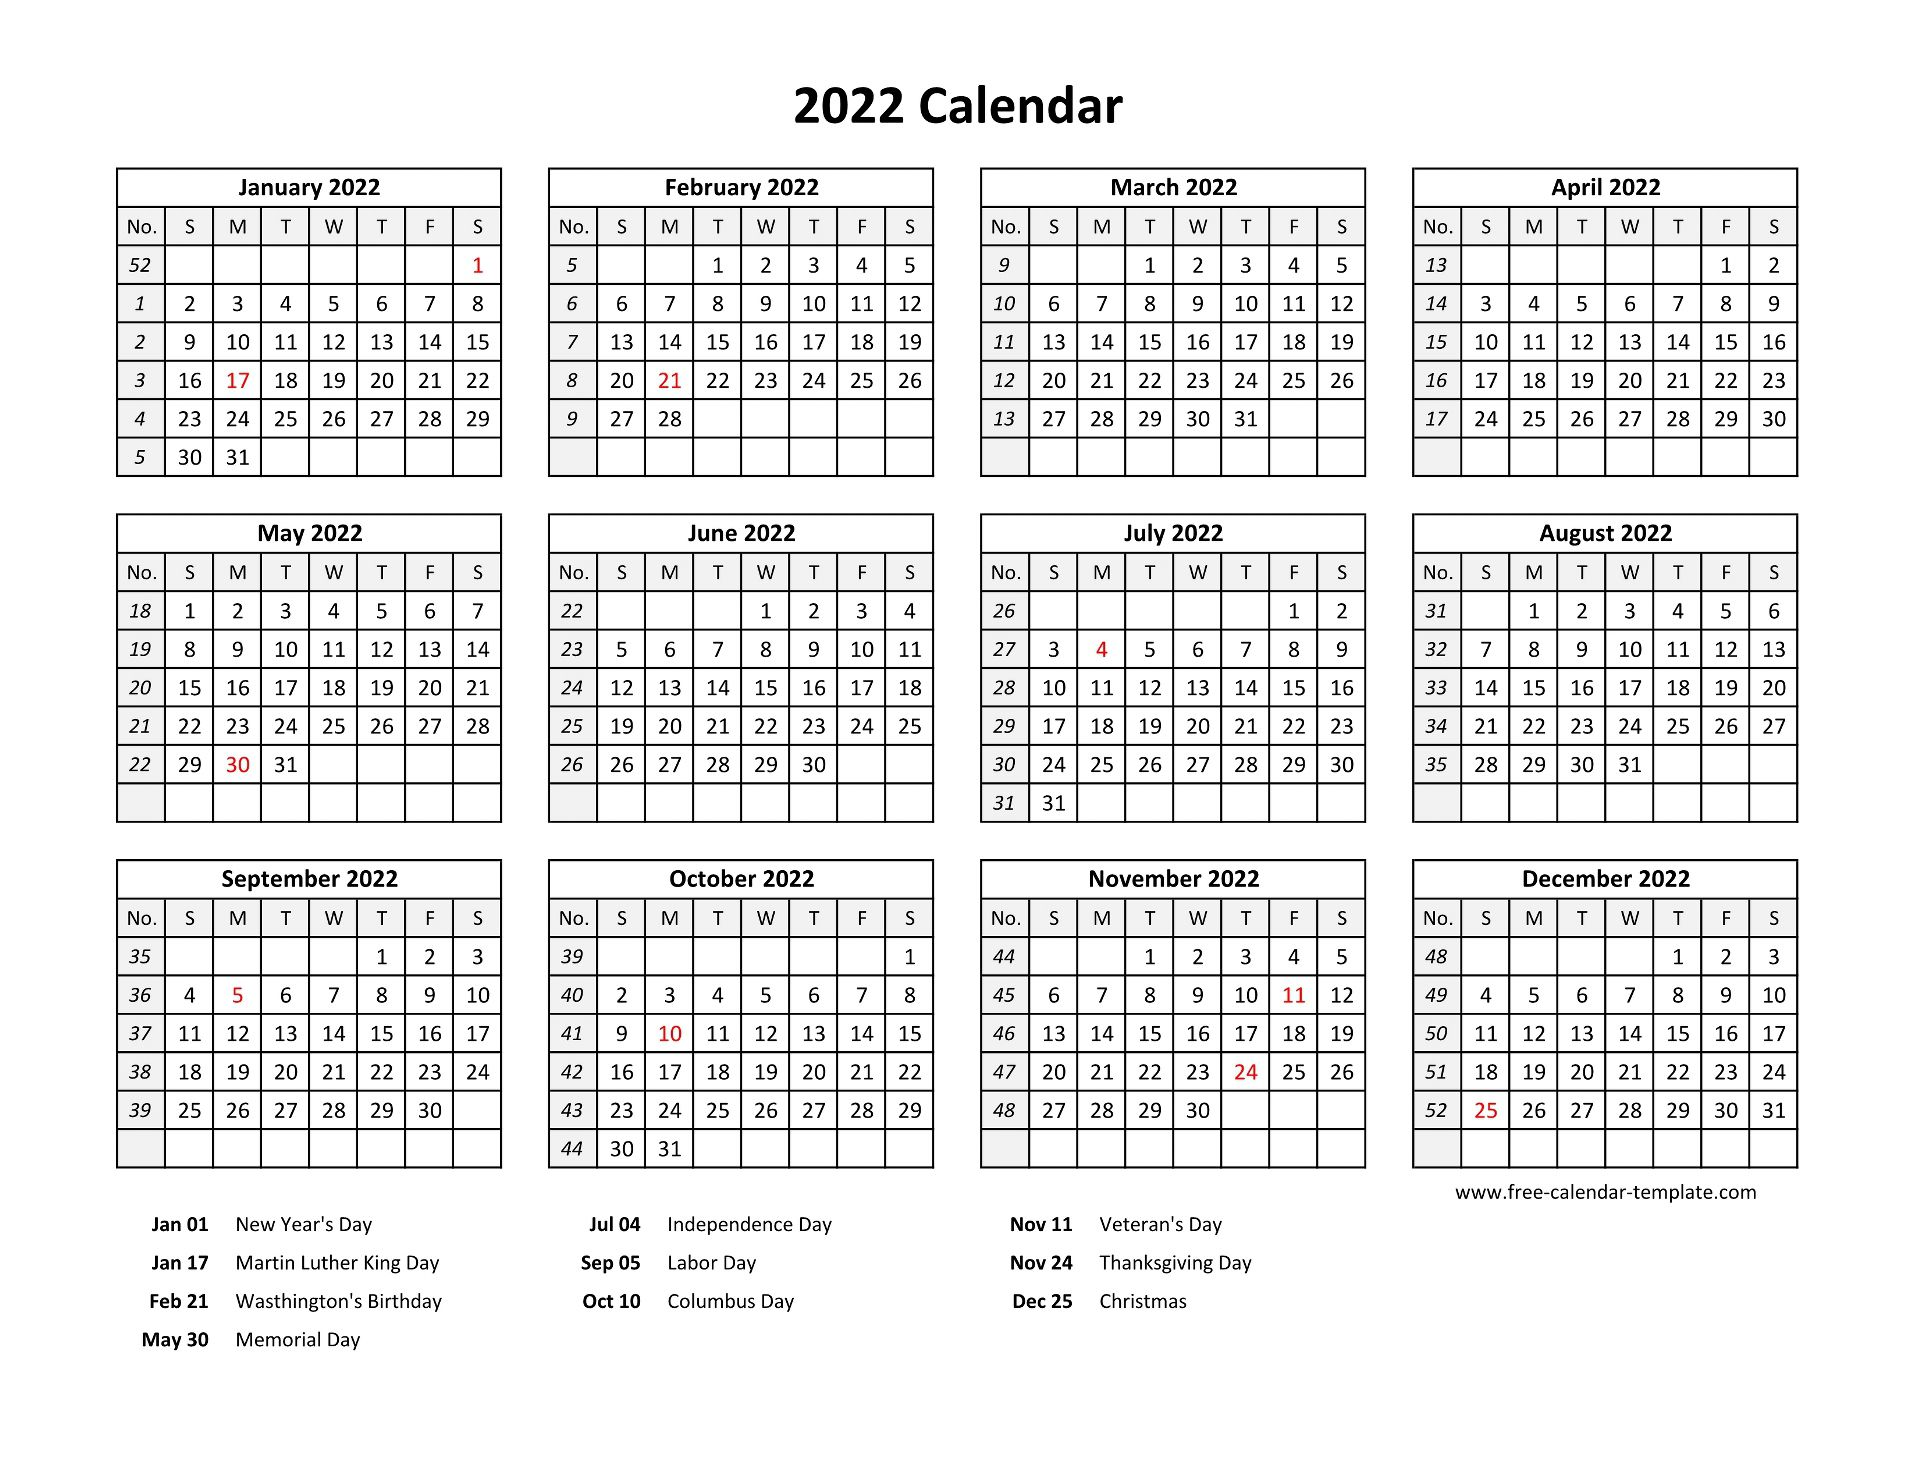 2022 yearly calendar template ready to print. Printable yearly calendar 2022 with US holidays | Free ...